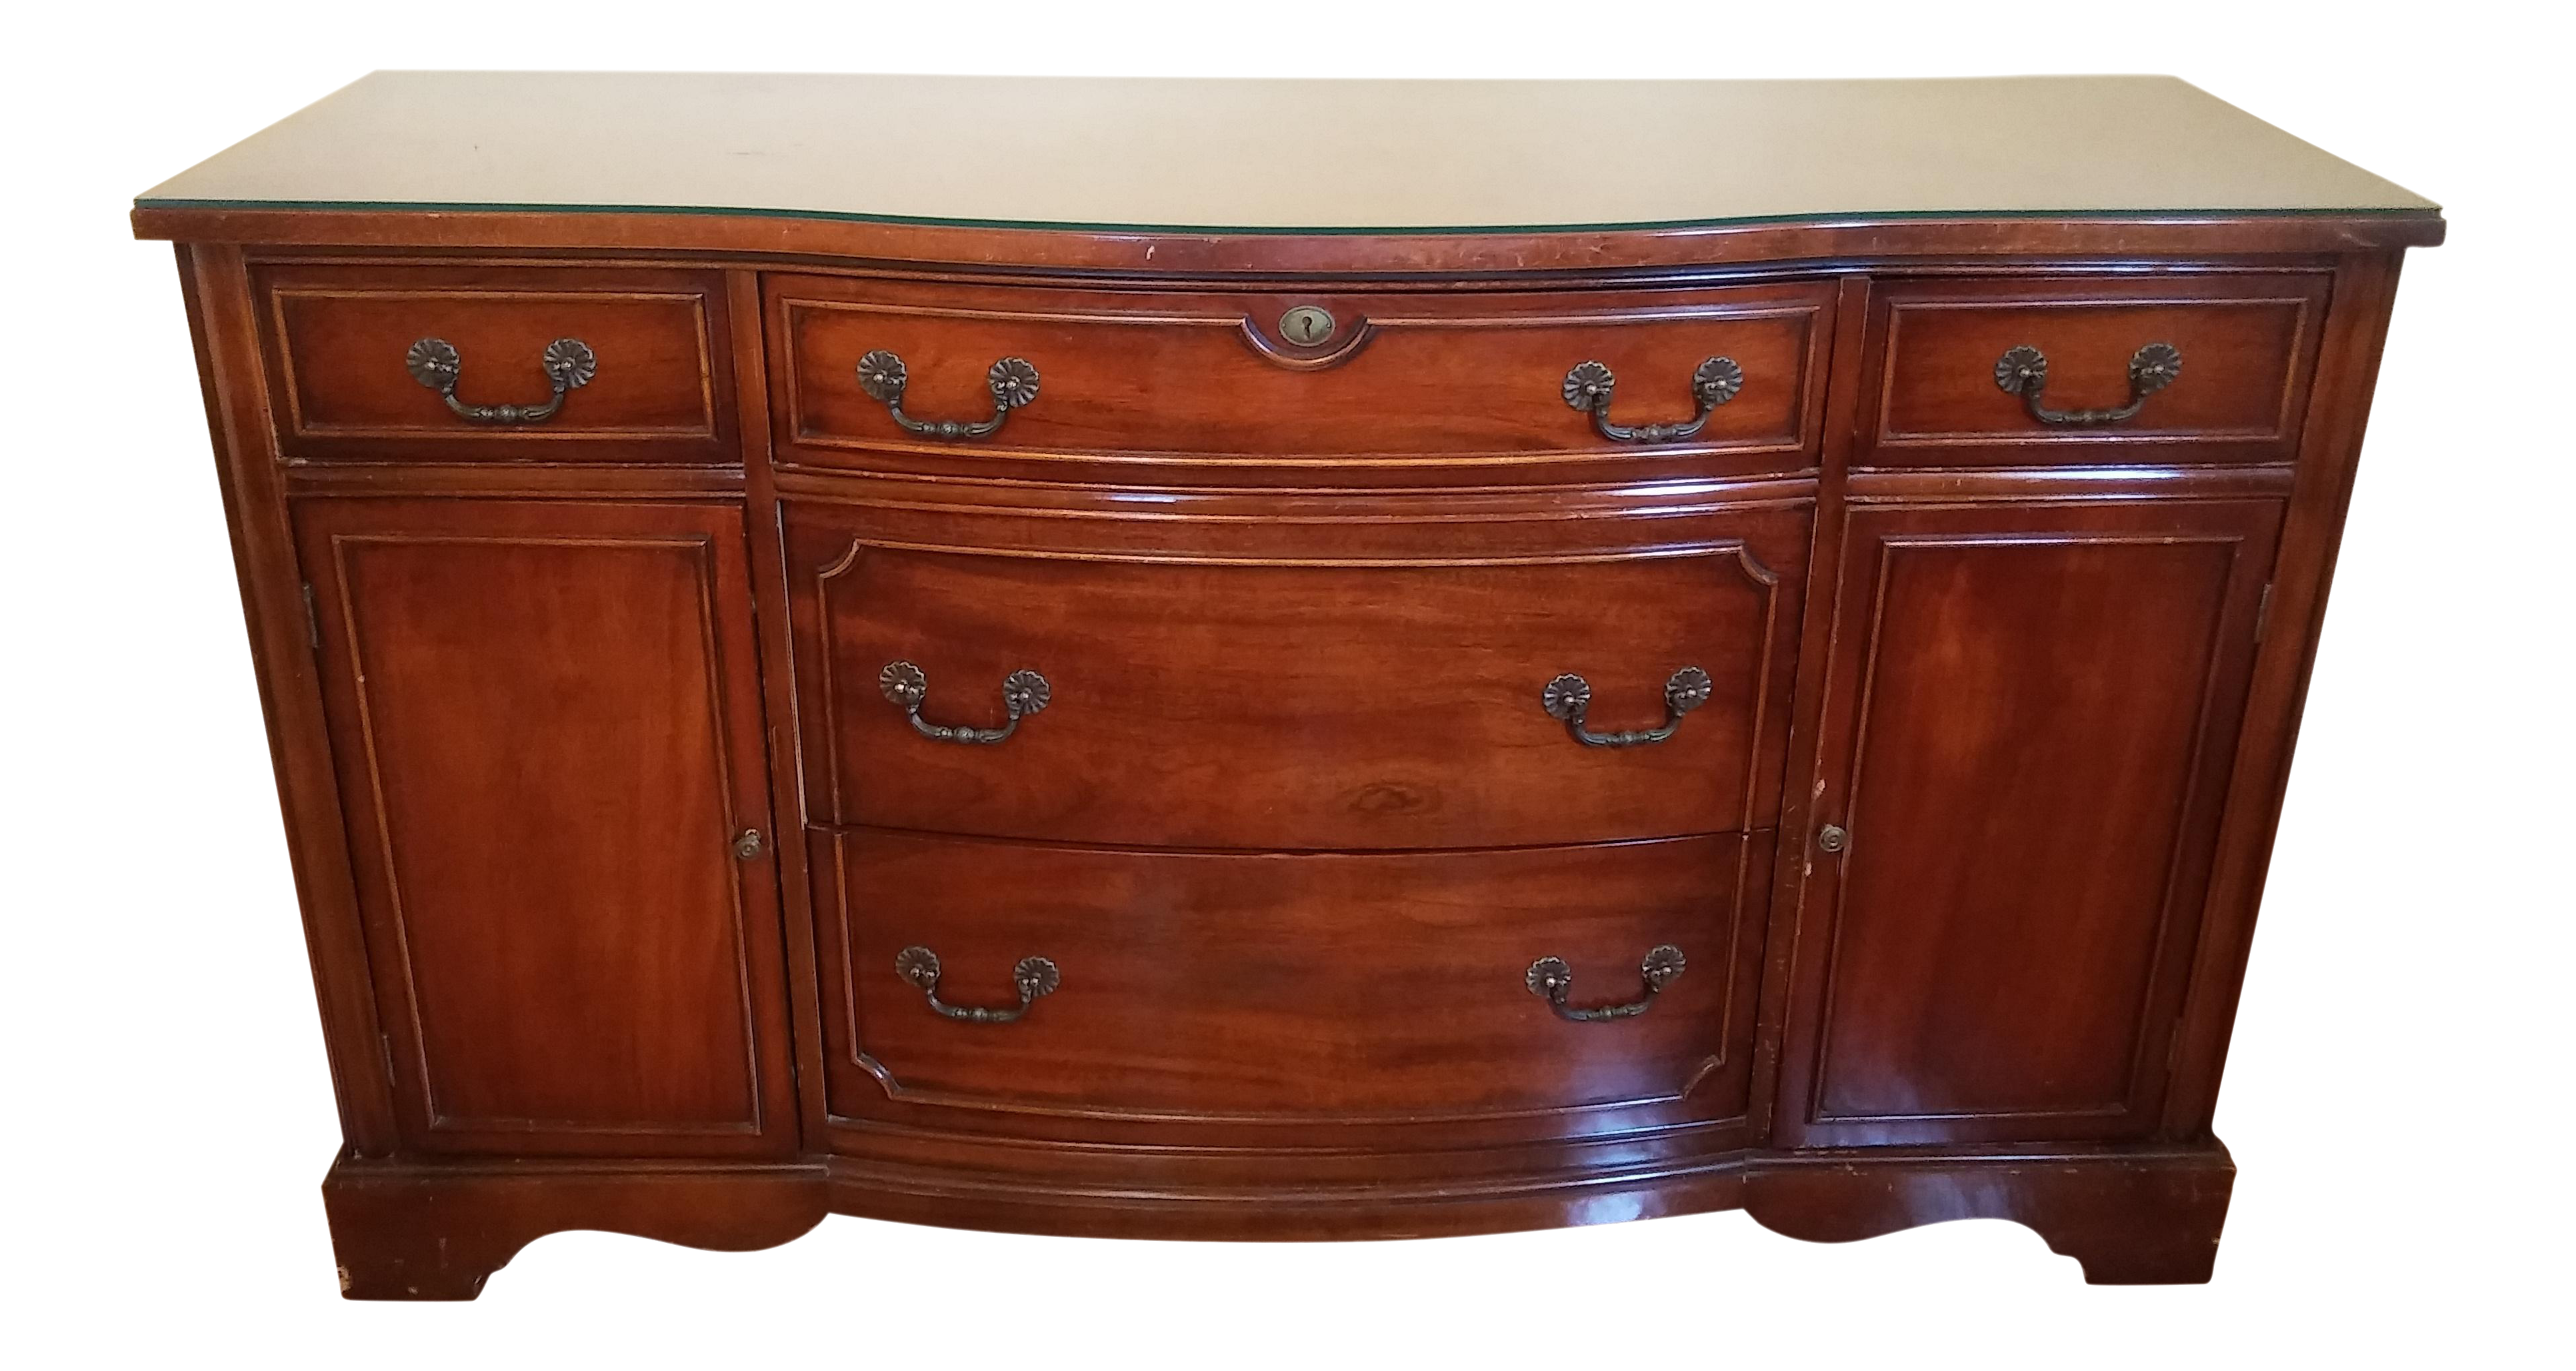 Gently Used Drexel Furniture Save up to 70 at Chairish